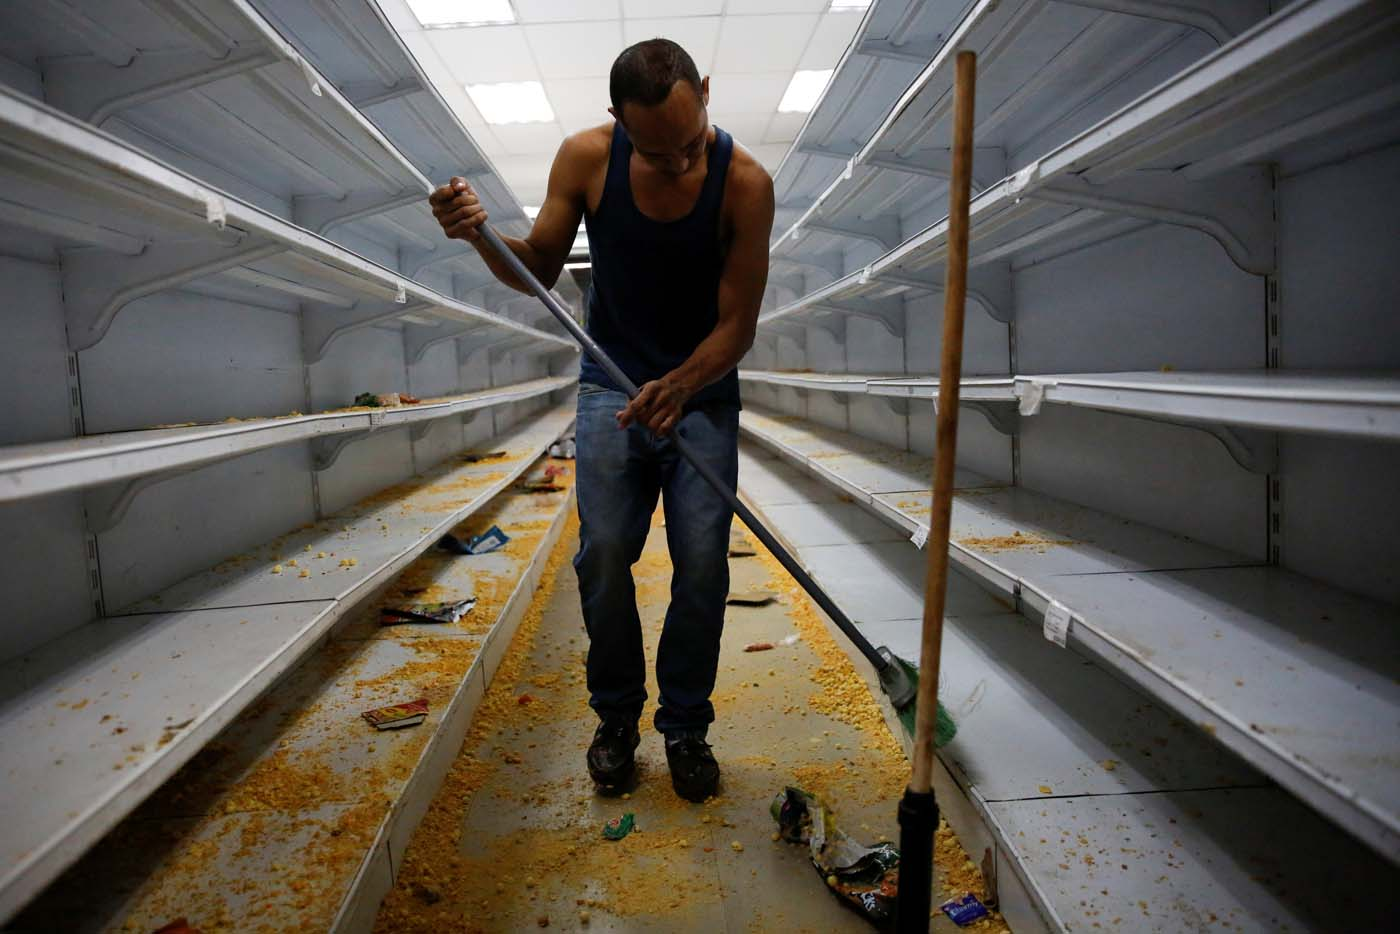 A worker cleans the shelves in a supermarket after it was looted in Caracas, Venezuela April 21, 2017. REUTERS/Carlos Garcia Rawlins